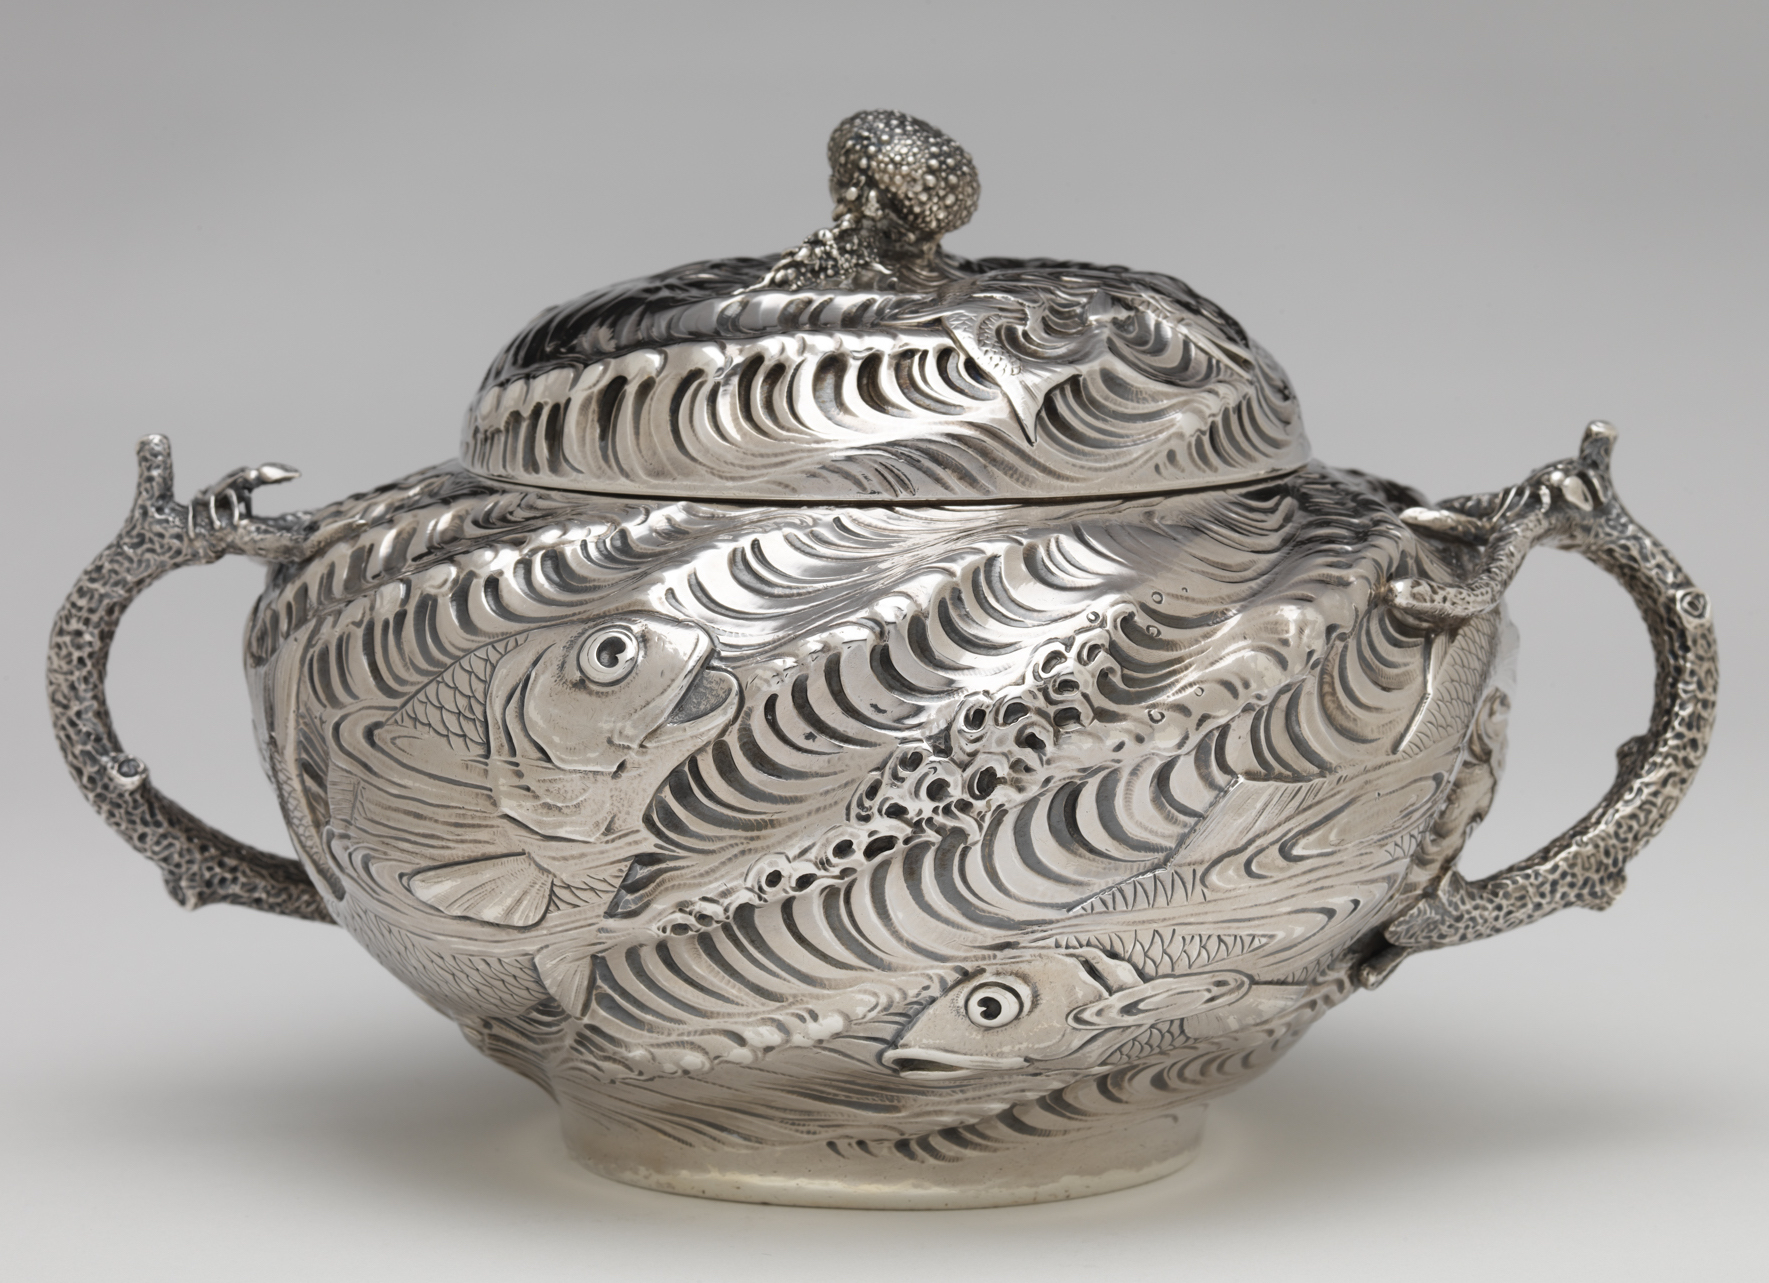 Gorham Manufacturing Company, Tureen, 1884. Gift of Mrs. Pierre Brunschwig. RISD Museum, Providence, RI.